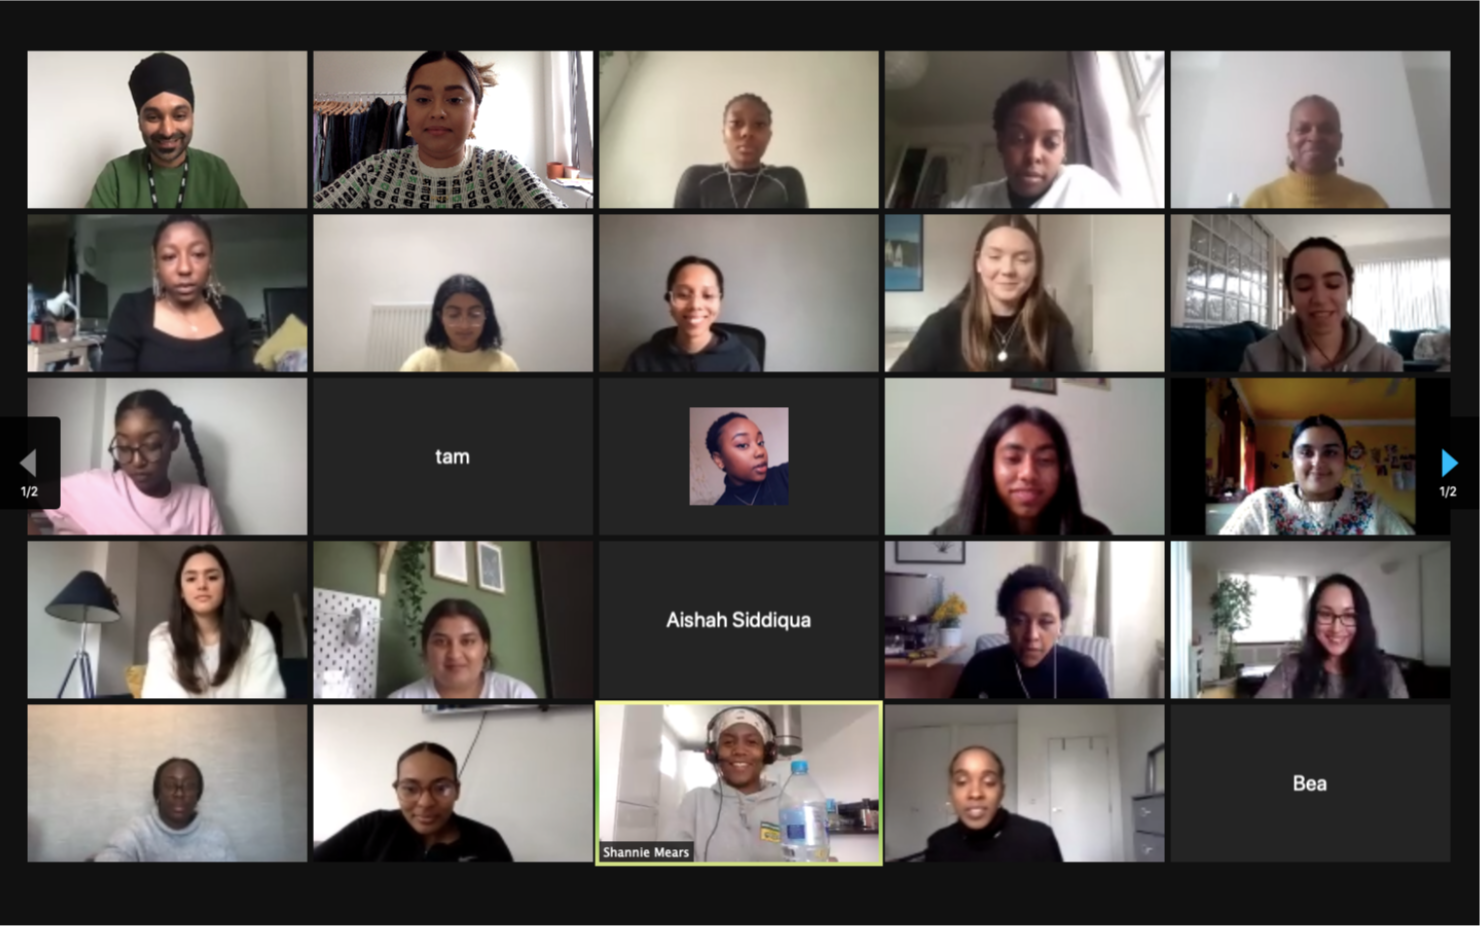 Screenshot of a zoom conference call